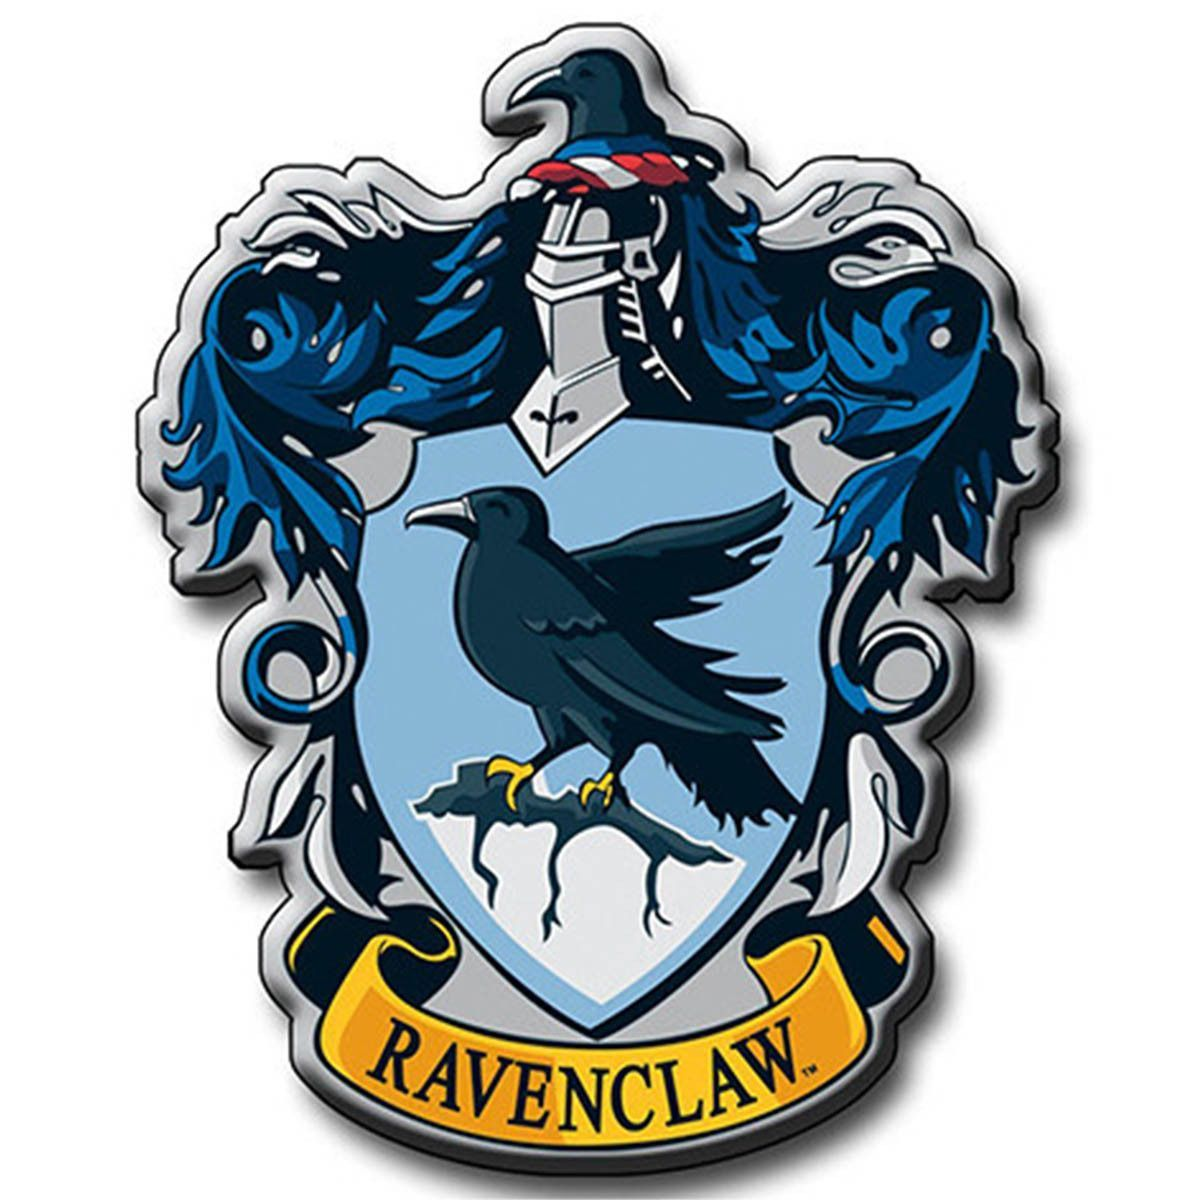 Ravenclaw Logo Wallpaper Harry potter ravenclaw, Harry